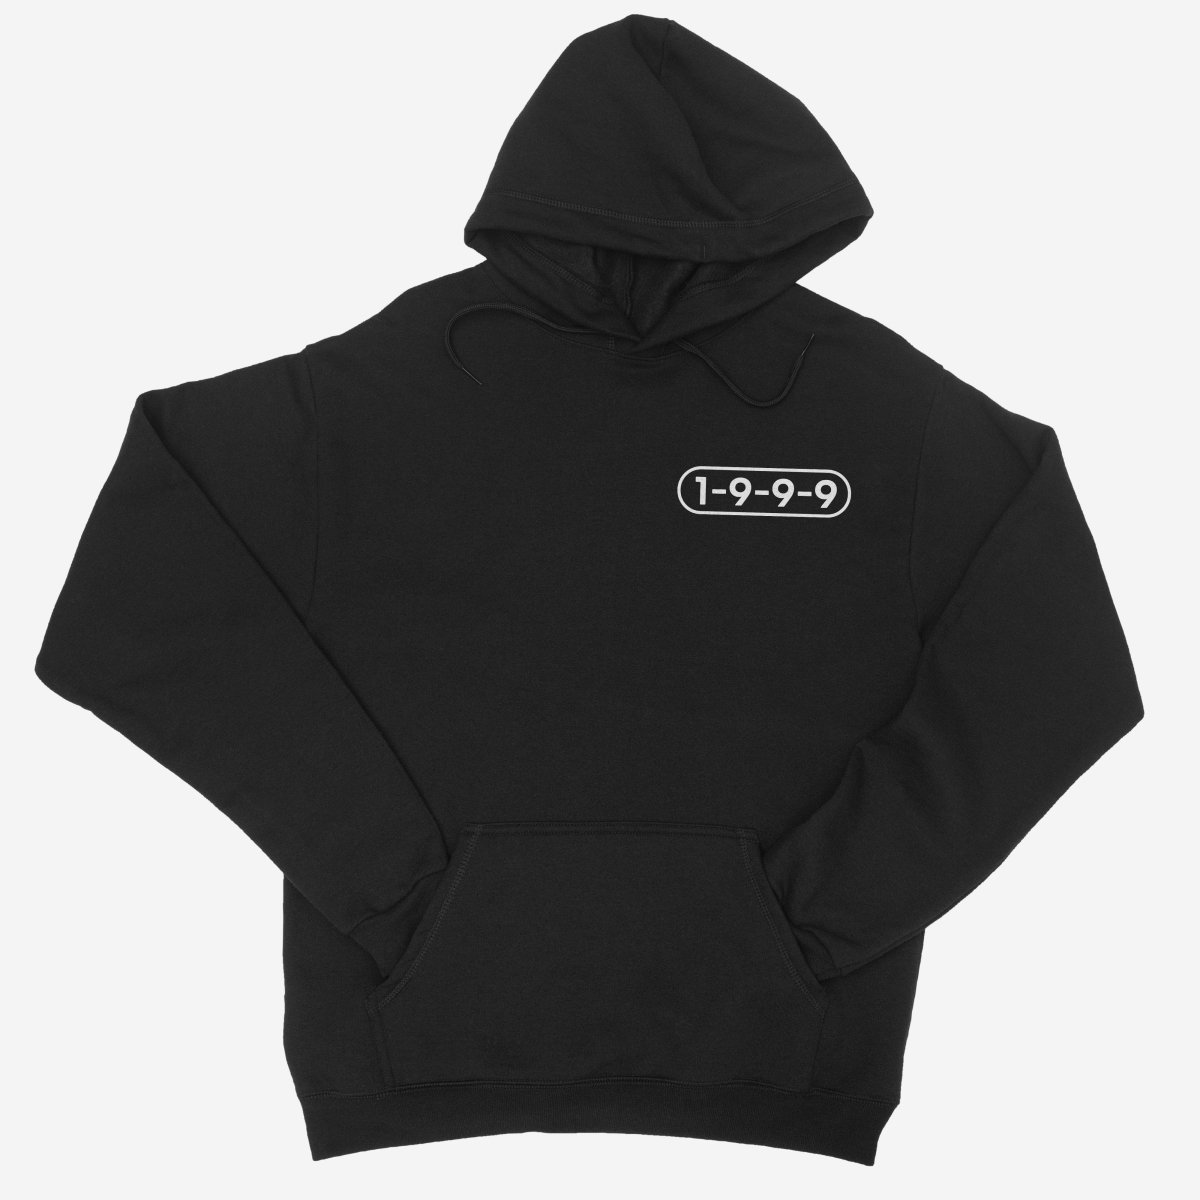 Kevin Abstract - 1-9-9-9 (Arizona Baby/Ghettobaby) Unisex Hoodie